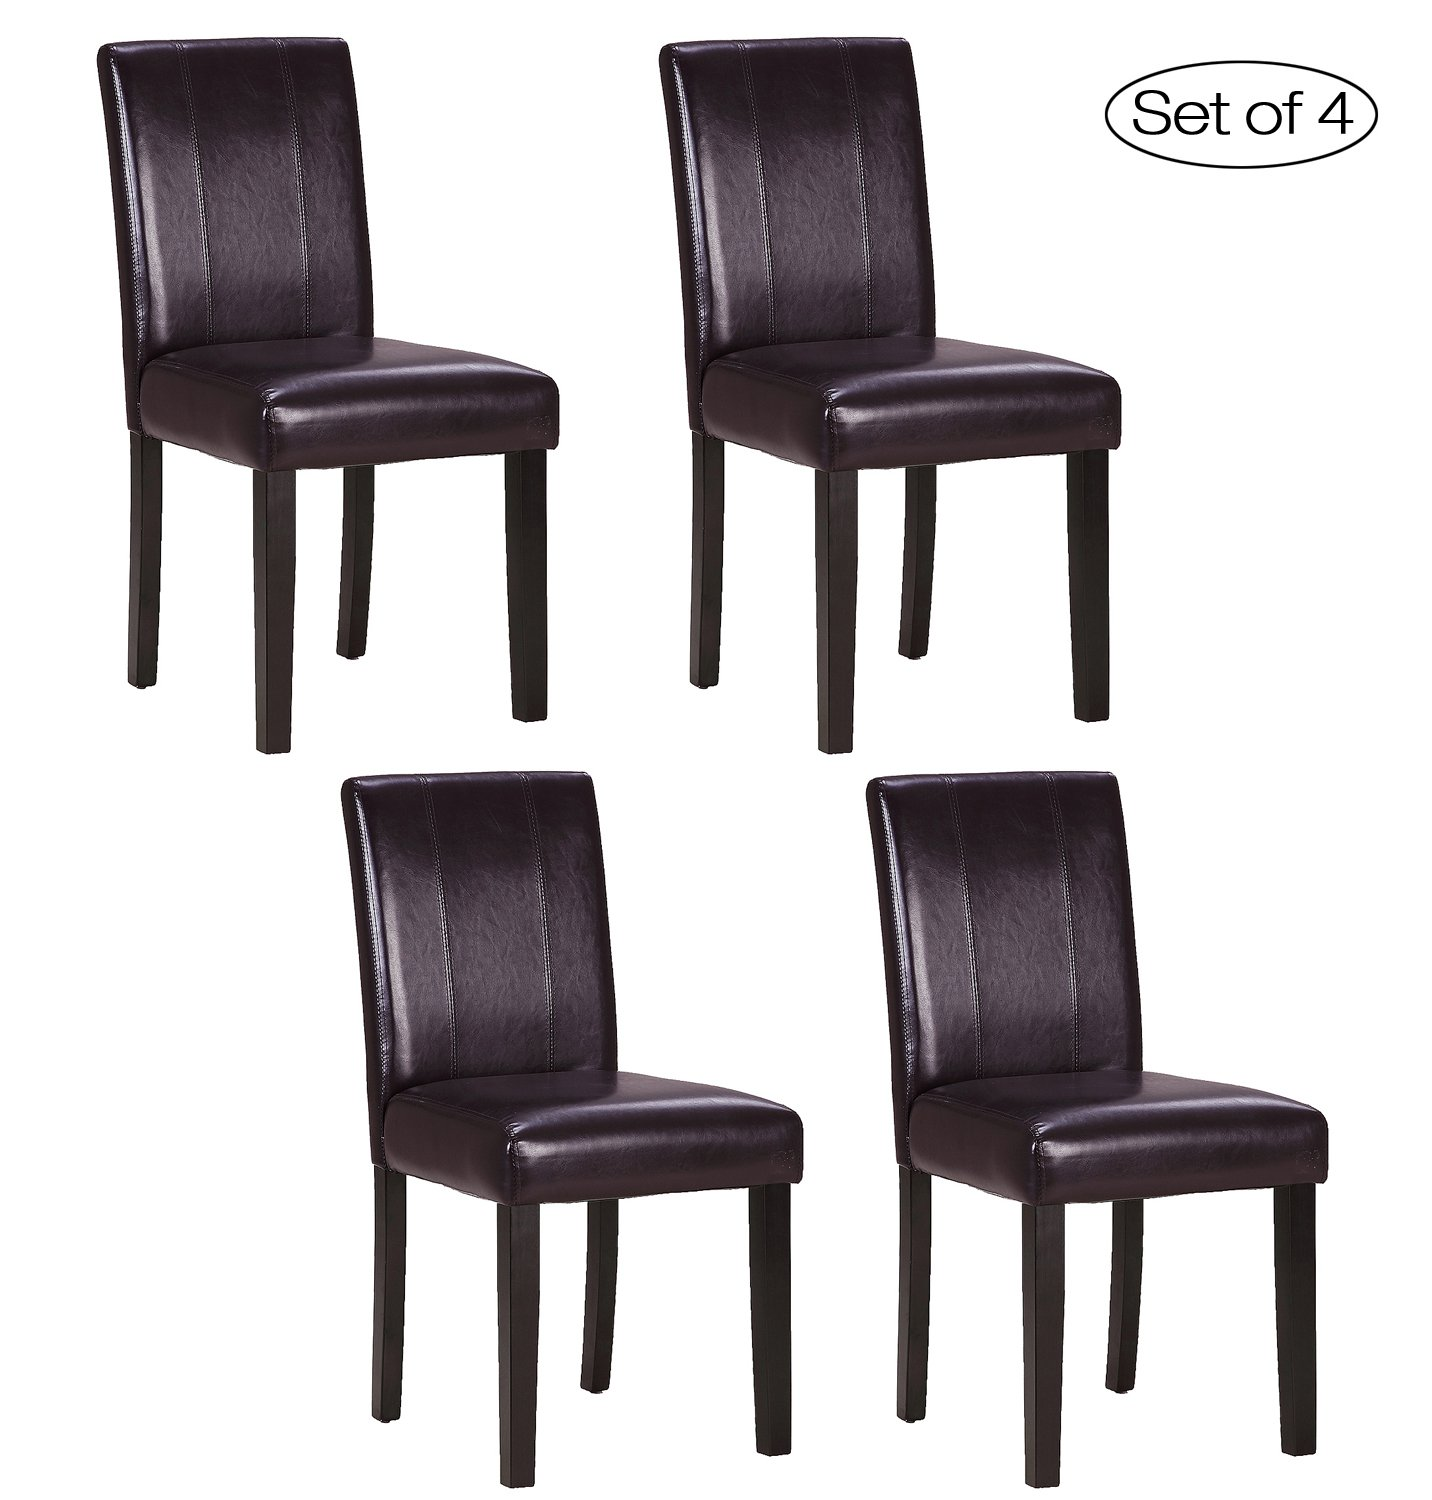 Set of 4 Kitchen Chairs with Solid Wood Legs ZXBSWELE Easy-to-Clean Urban Style Dining Chair for Kitchen, Living Room, Dining Room, Leatherette, Chocolate Brown